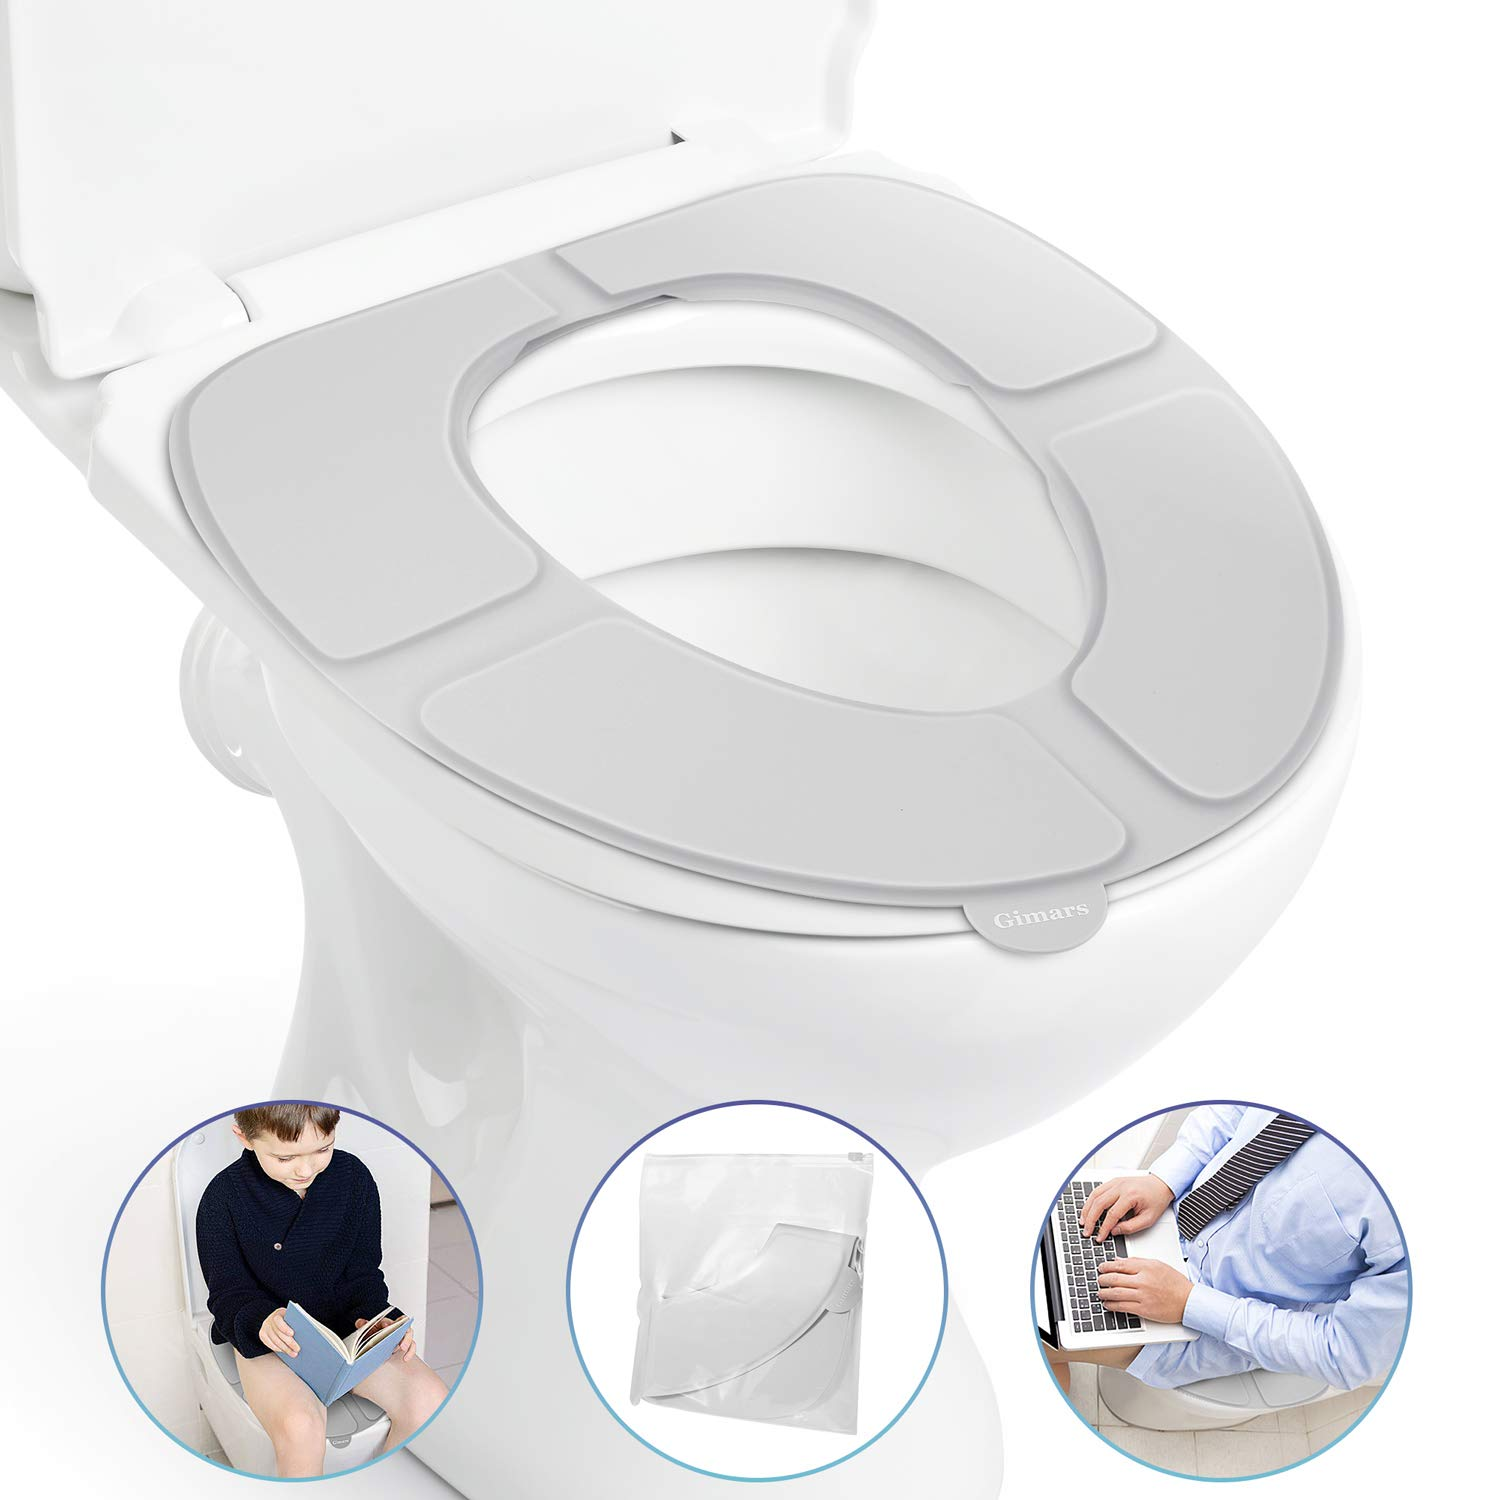 Gimars Newest Reusable Silicon Folding Public Adults Teens Travel Toilet Potty Seat Covers Protectors,Gray